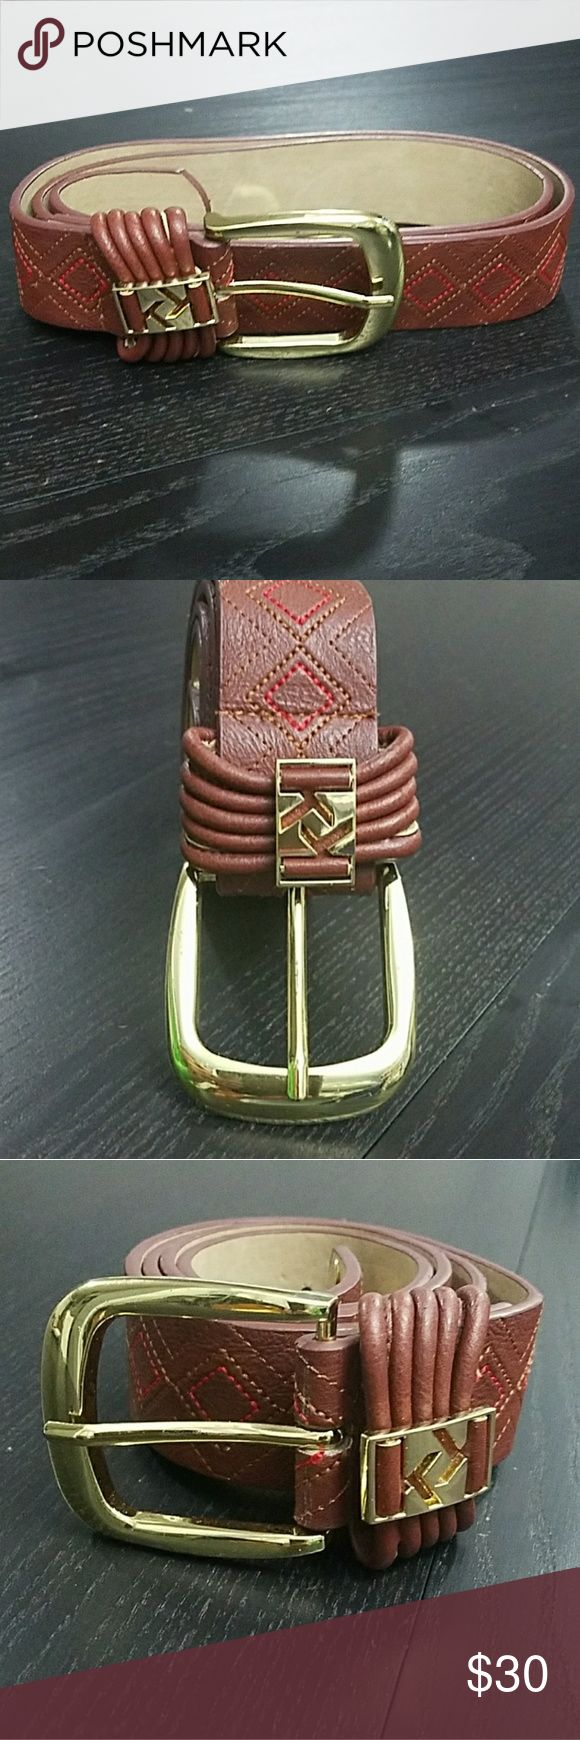 """New Kensie Brown Leather Embroirdered Belt w/Gold New Kensie Brown Leather Belt with Gold Buckle Accents and Embroirdery throughout in Red and Tan. Measures 38"""" long with 5 holds punched for adjustment  size:  31"""" - 36"""" Kensie Accessories Belts"""